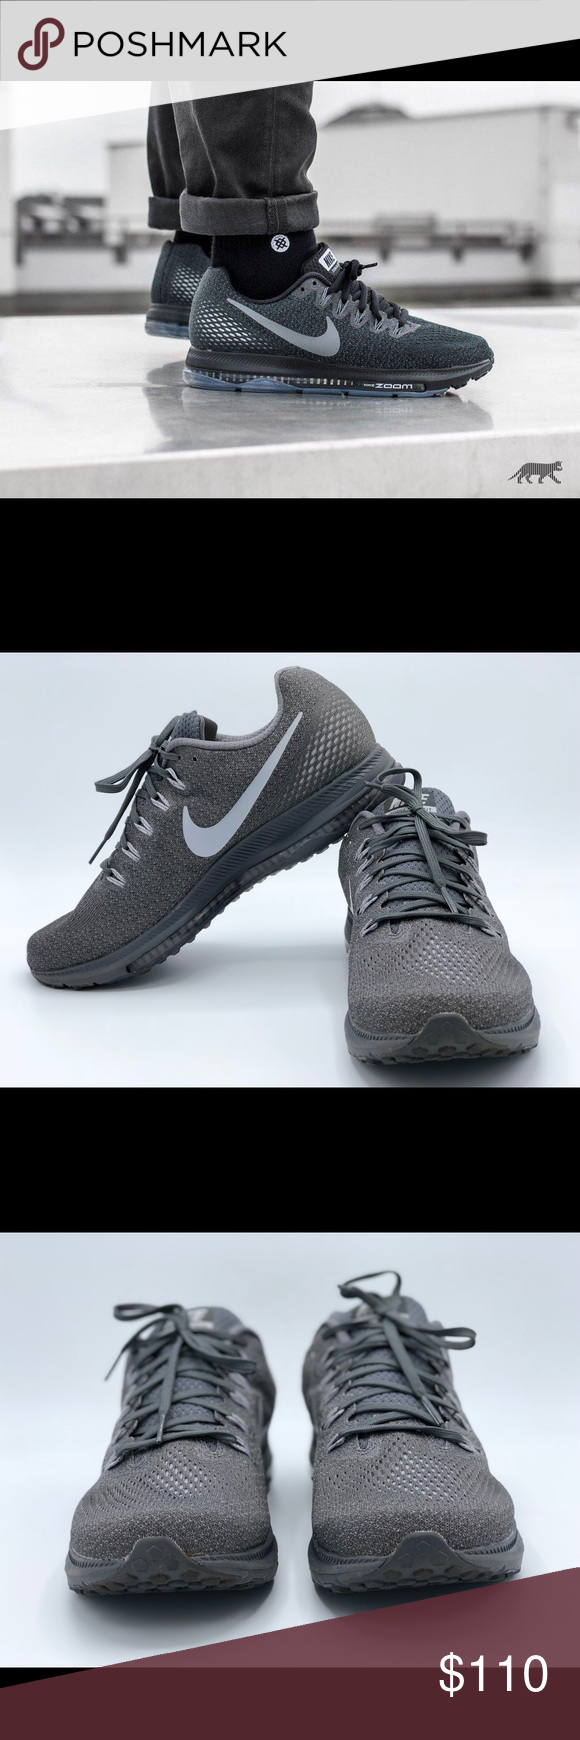 Nike Zoom All Out Men's Low Running Shoe